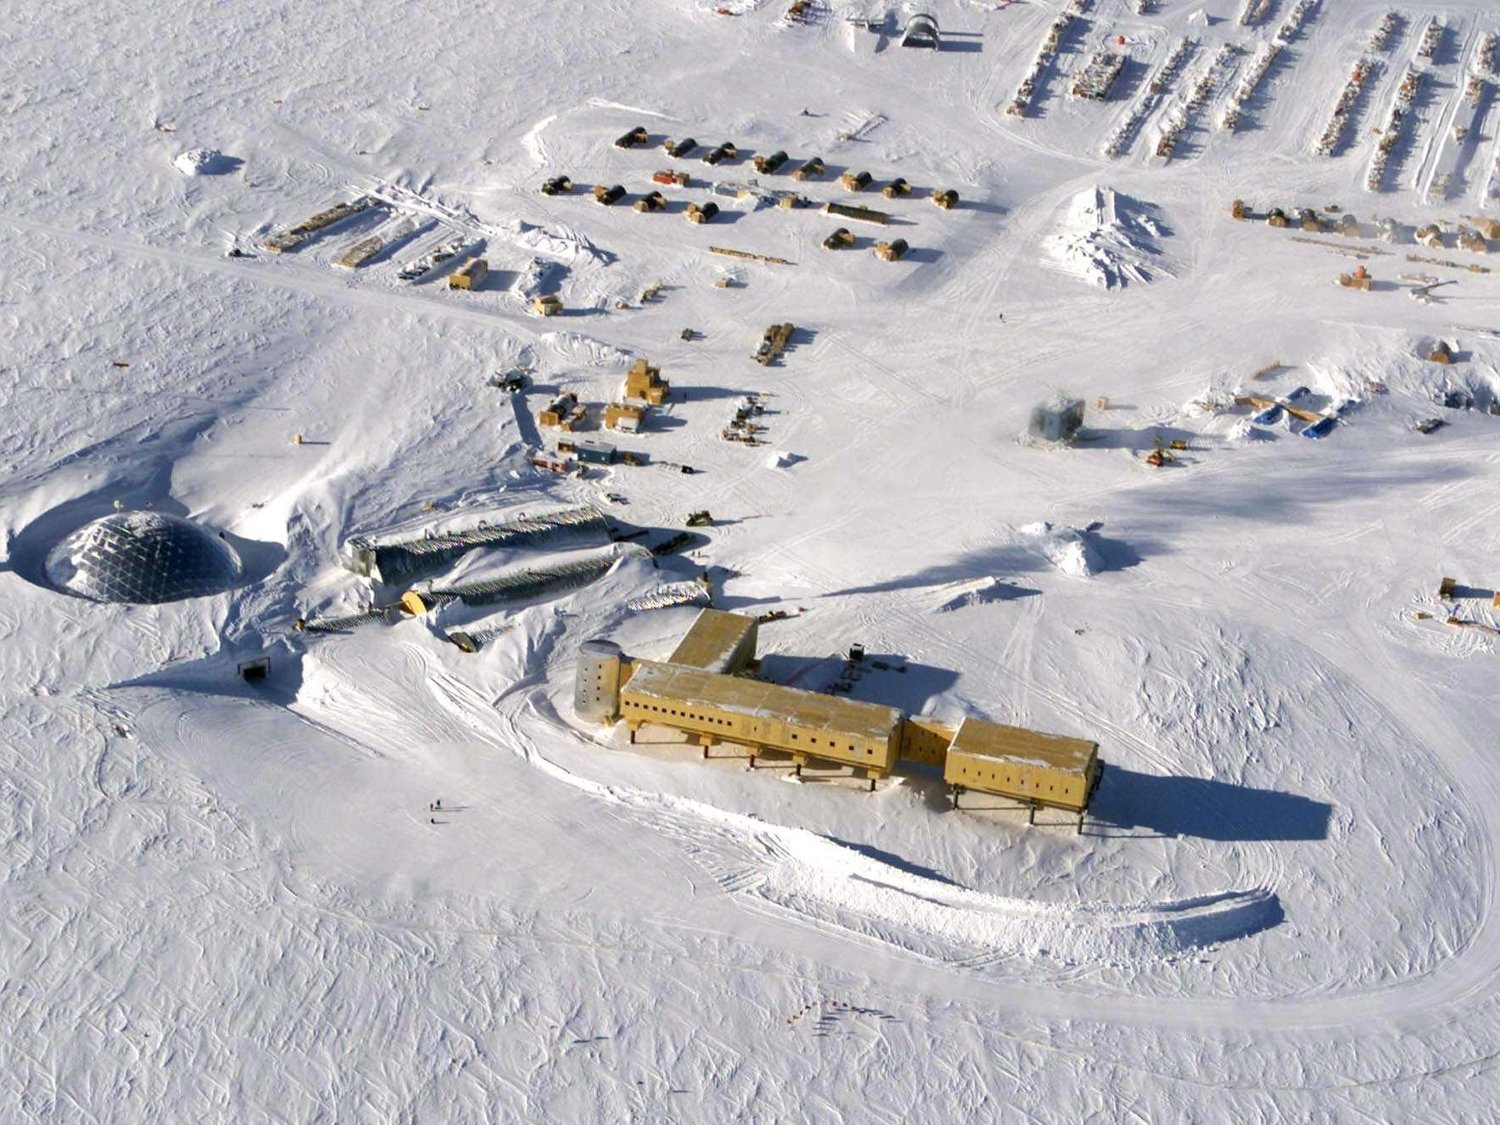 The U.S. Amundsen-Scott South Pole Station in Antarctica. PC: David McCarthy